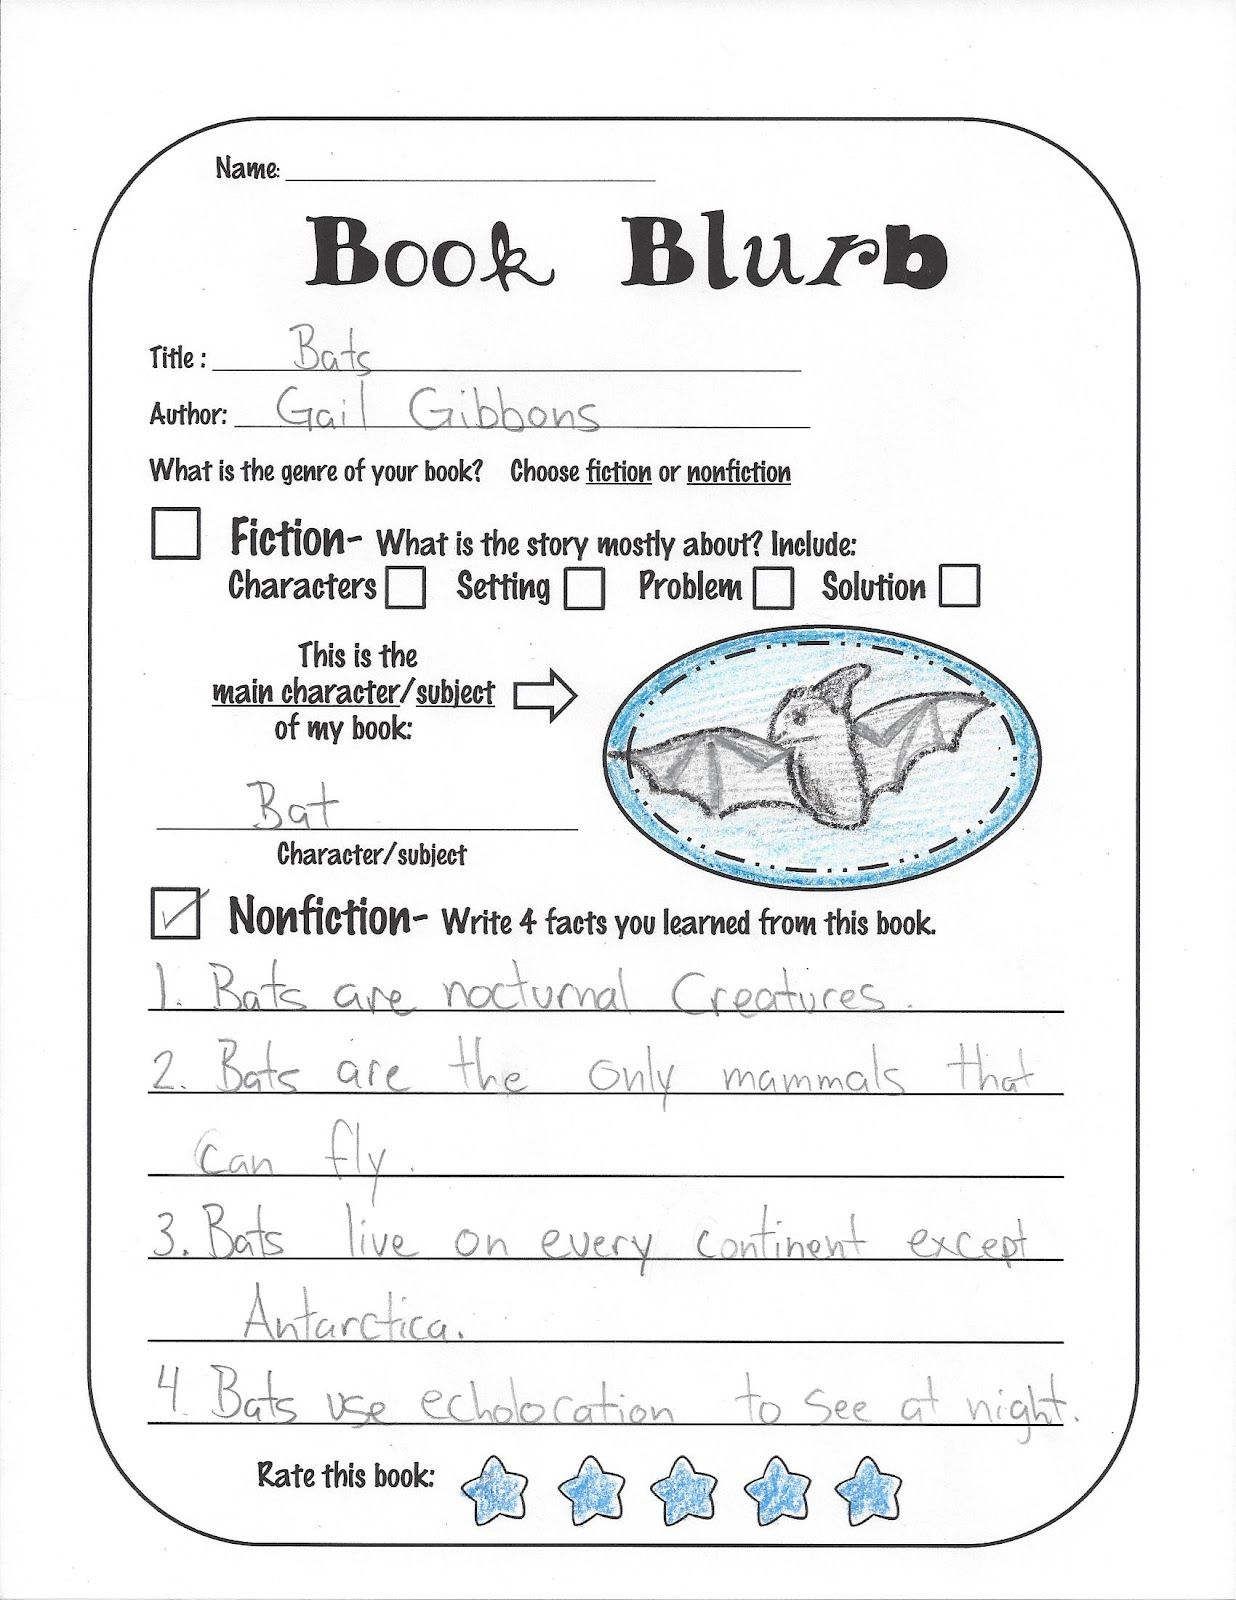 Book Blurb For Students To Fill Out After Reading A Book